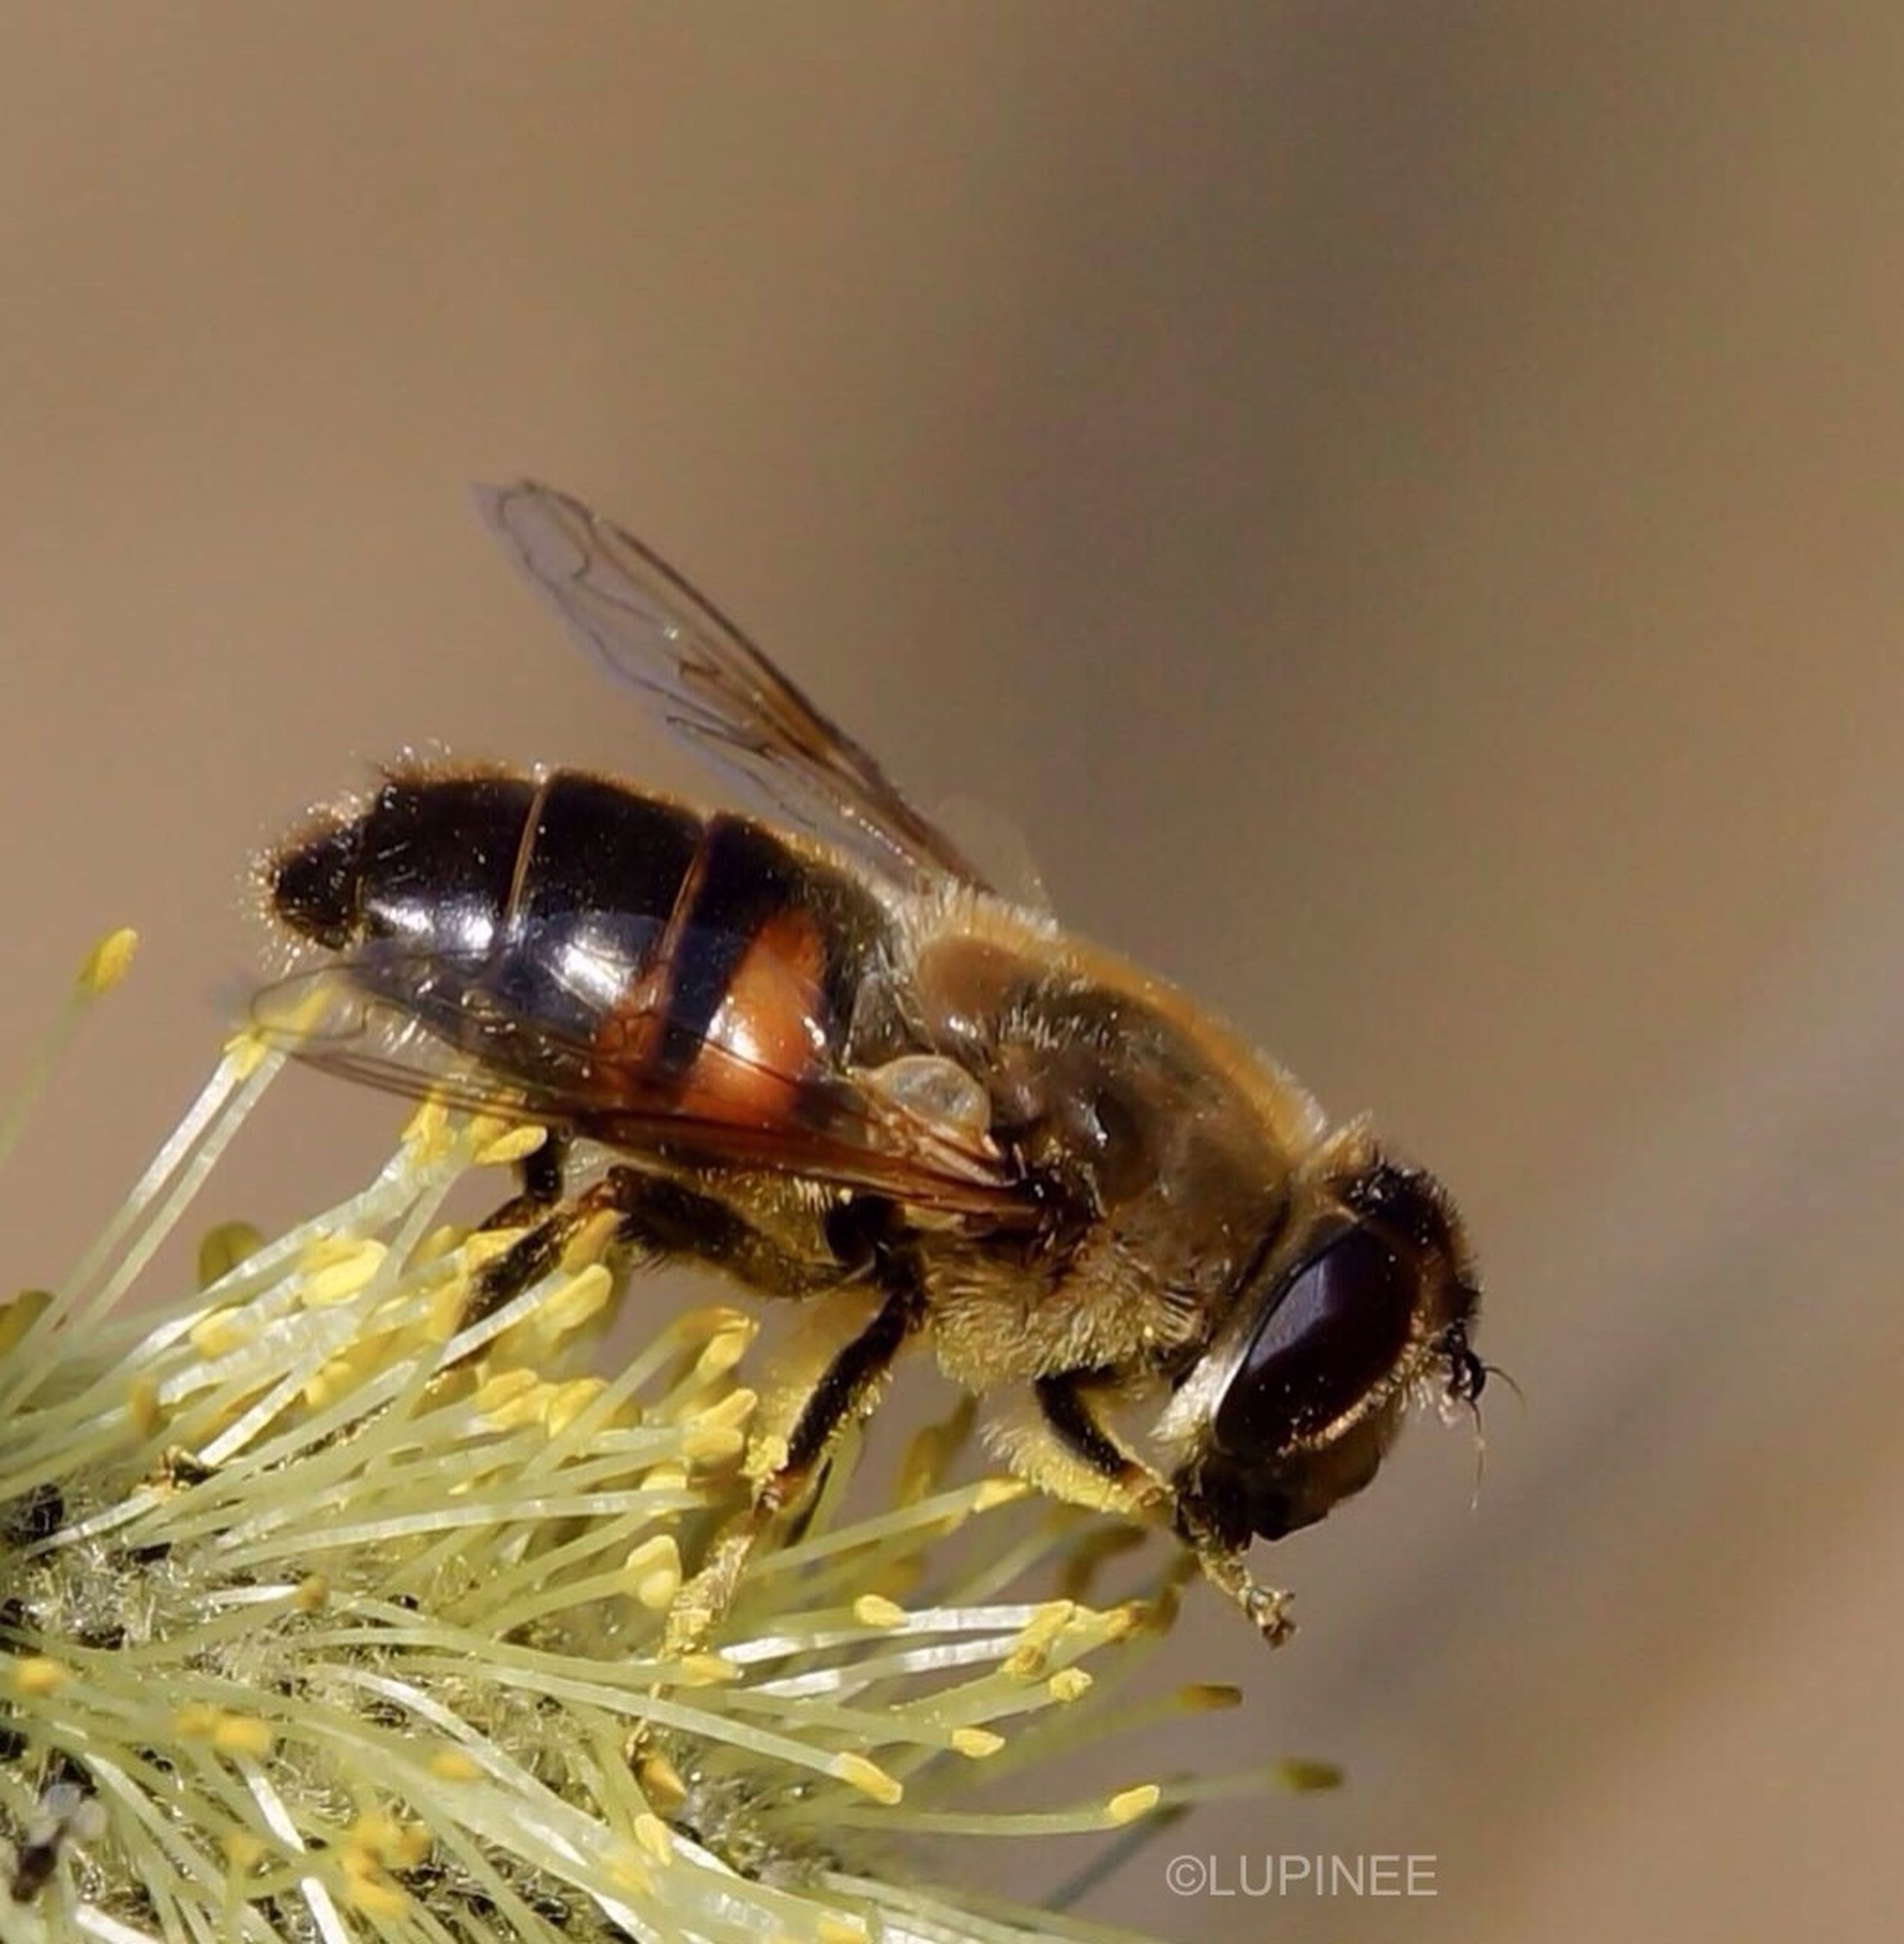 insect, animal themes, one animal, animals in the wild, wildlife, close-up, spider, bee, selective focus, fly, pollination, arthropod, no people, zoology, indoors, animal antenna, nature, focus on foreground, honey bee, housefly